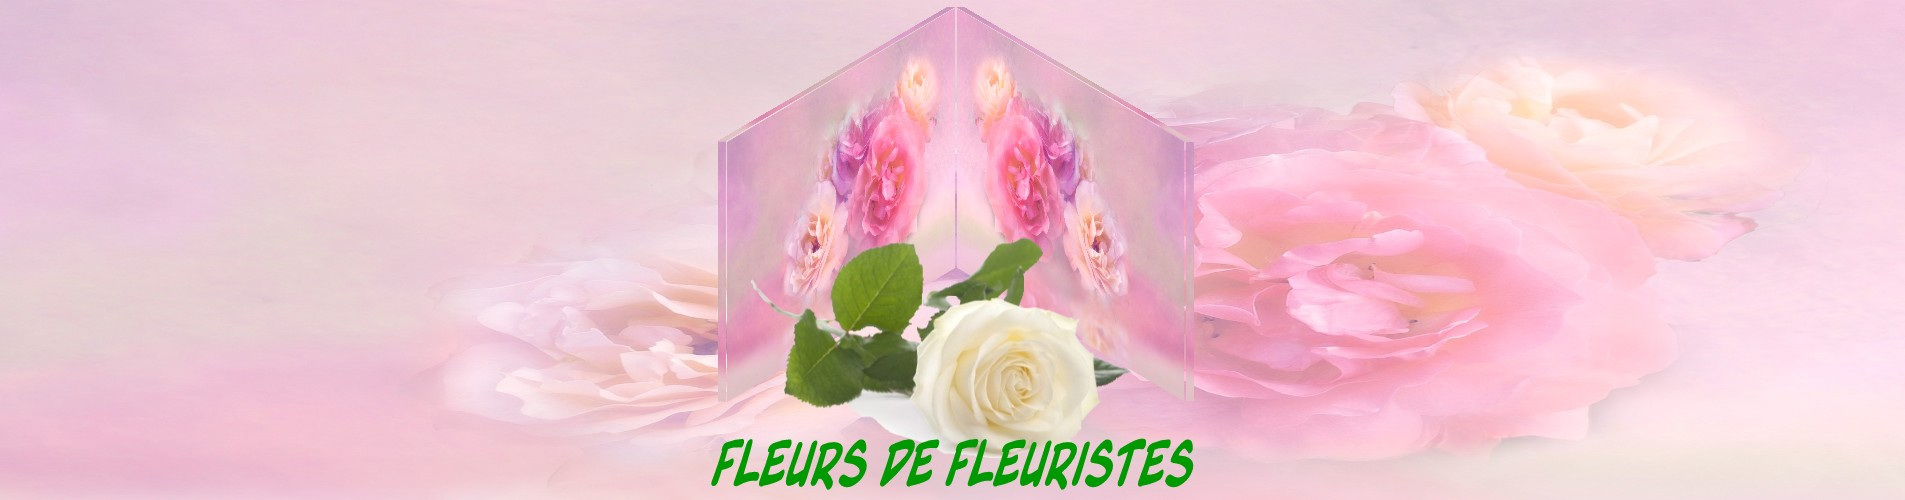 FLEURISTE CONTESCOURT